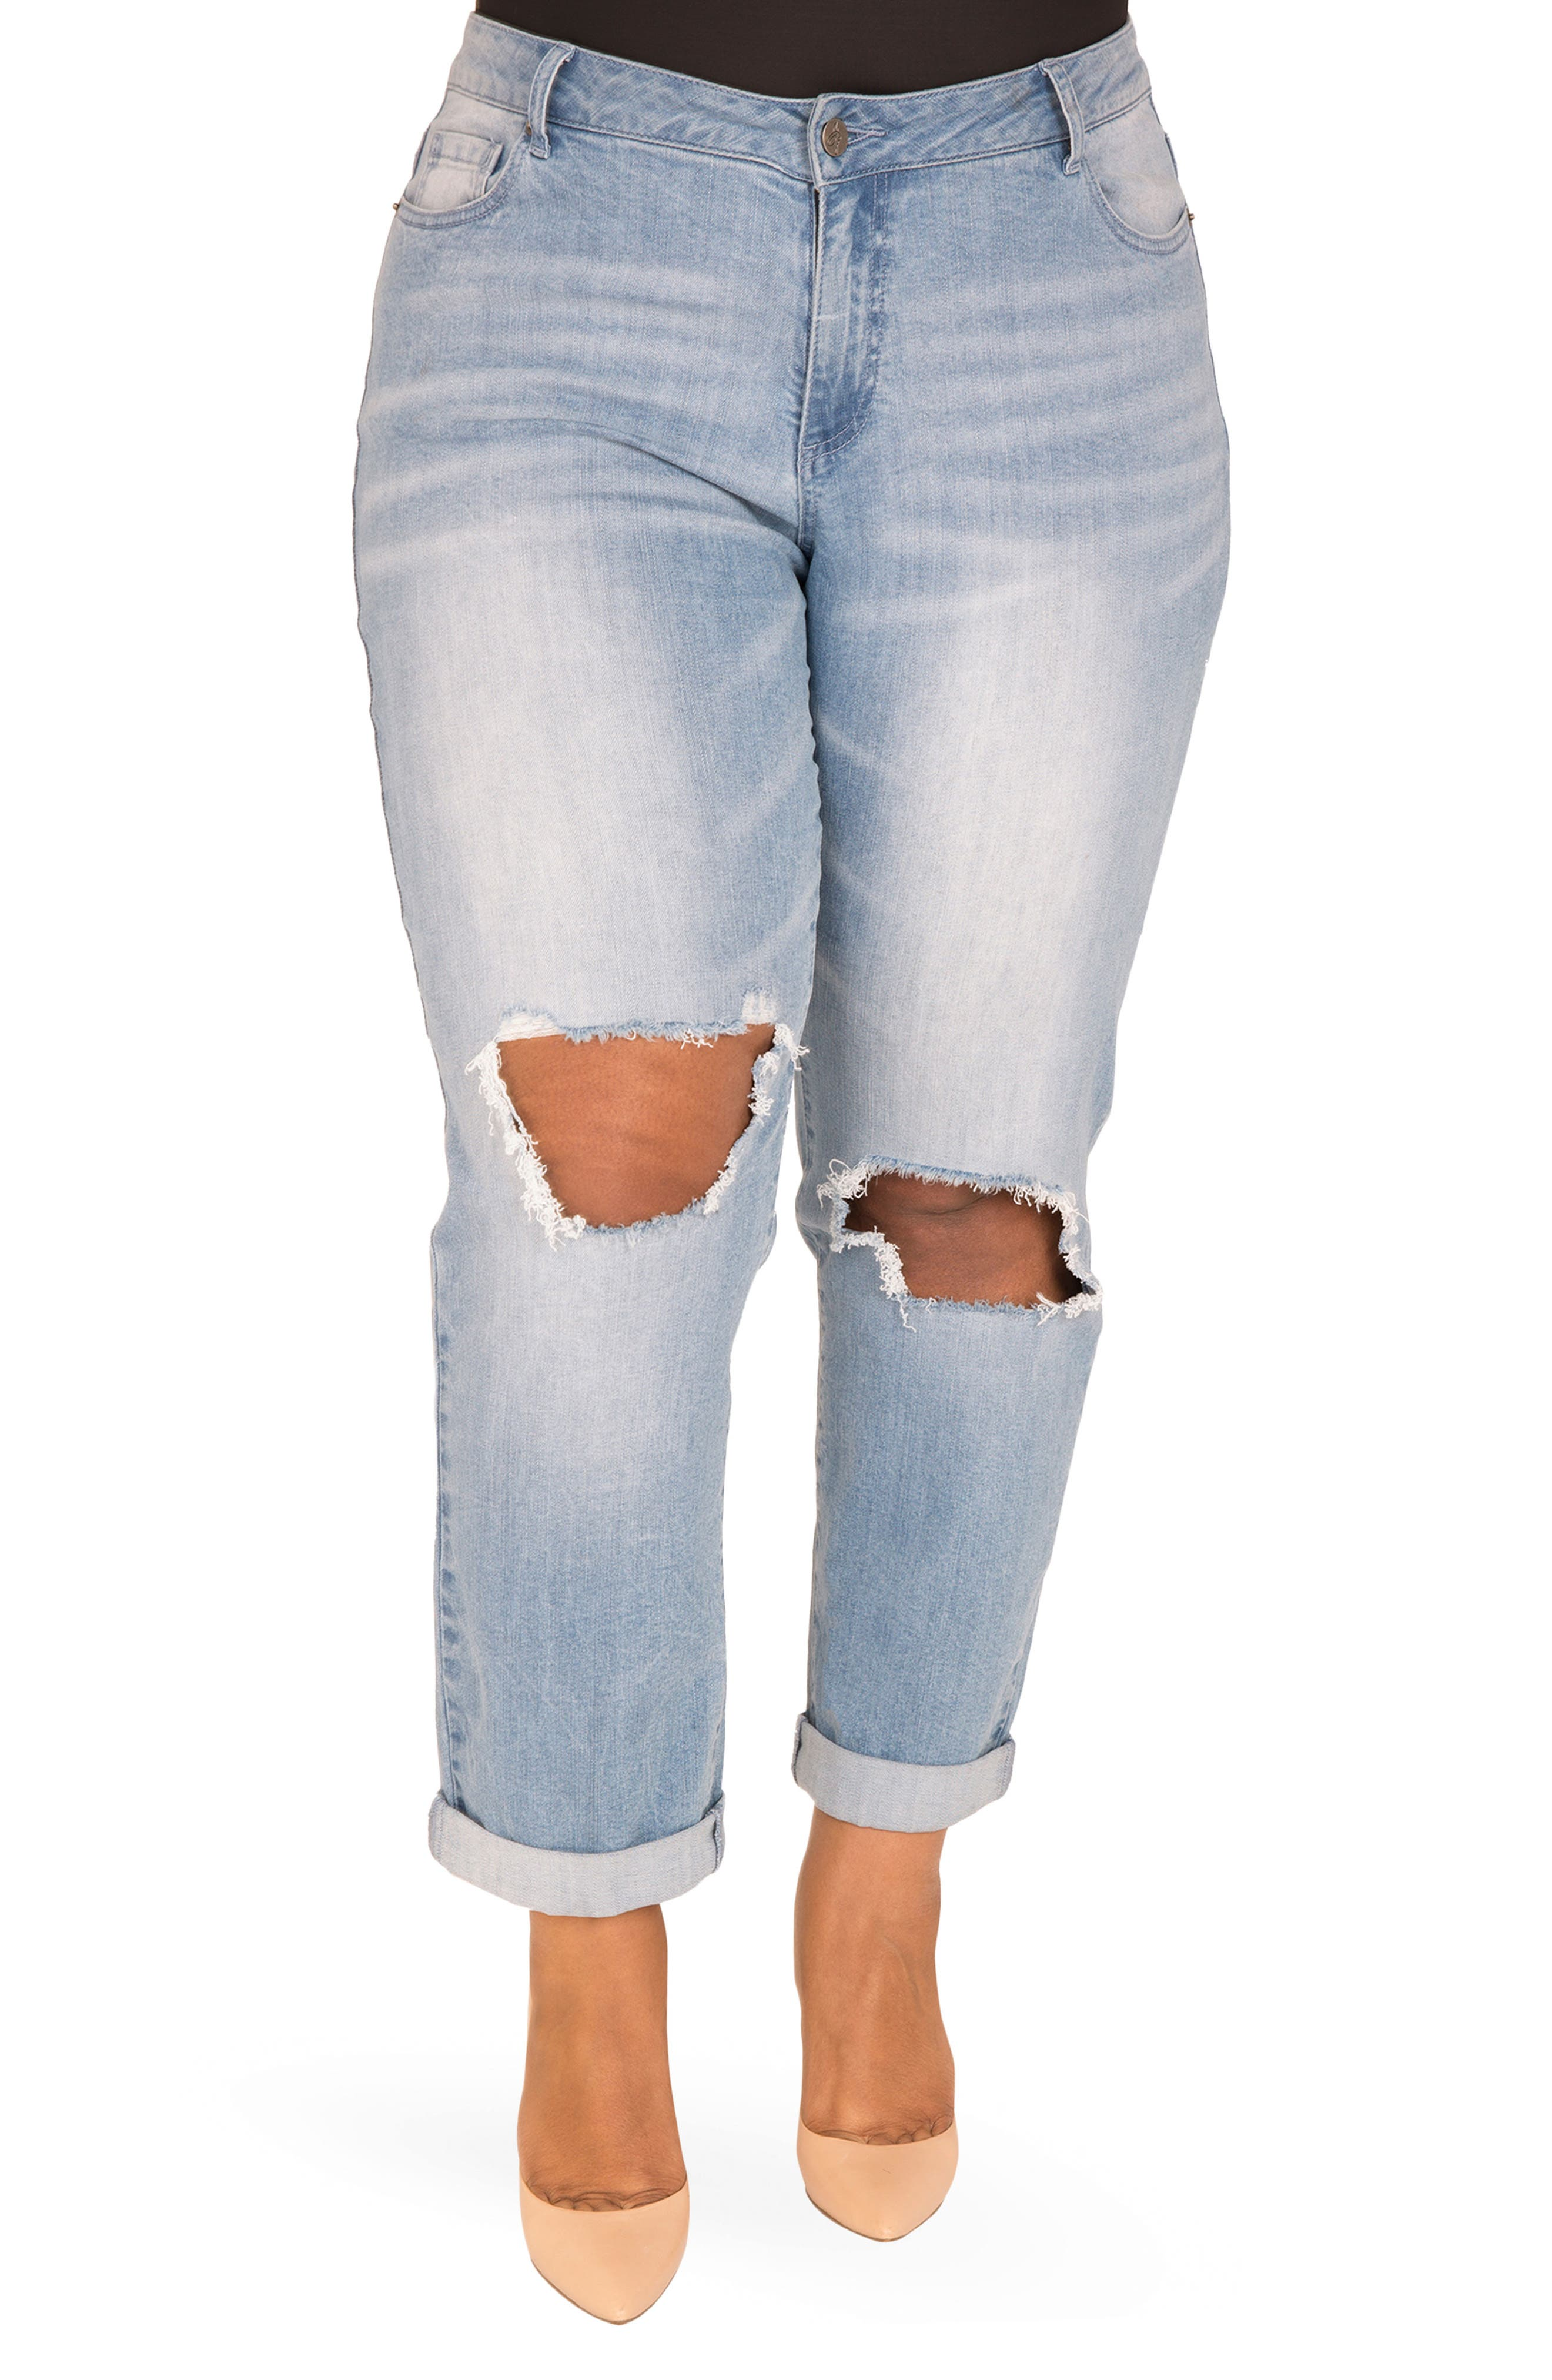 Verla Destroyed Boyfriend Jeans,                         Main,                         color, LIGHT BLUE